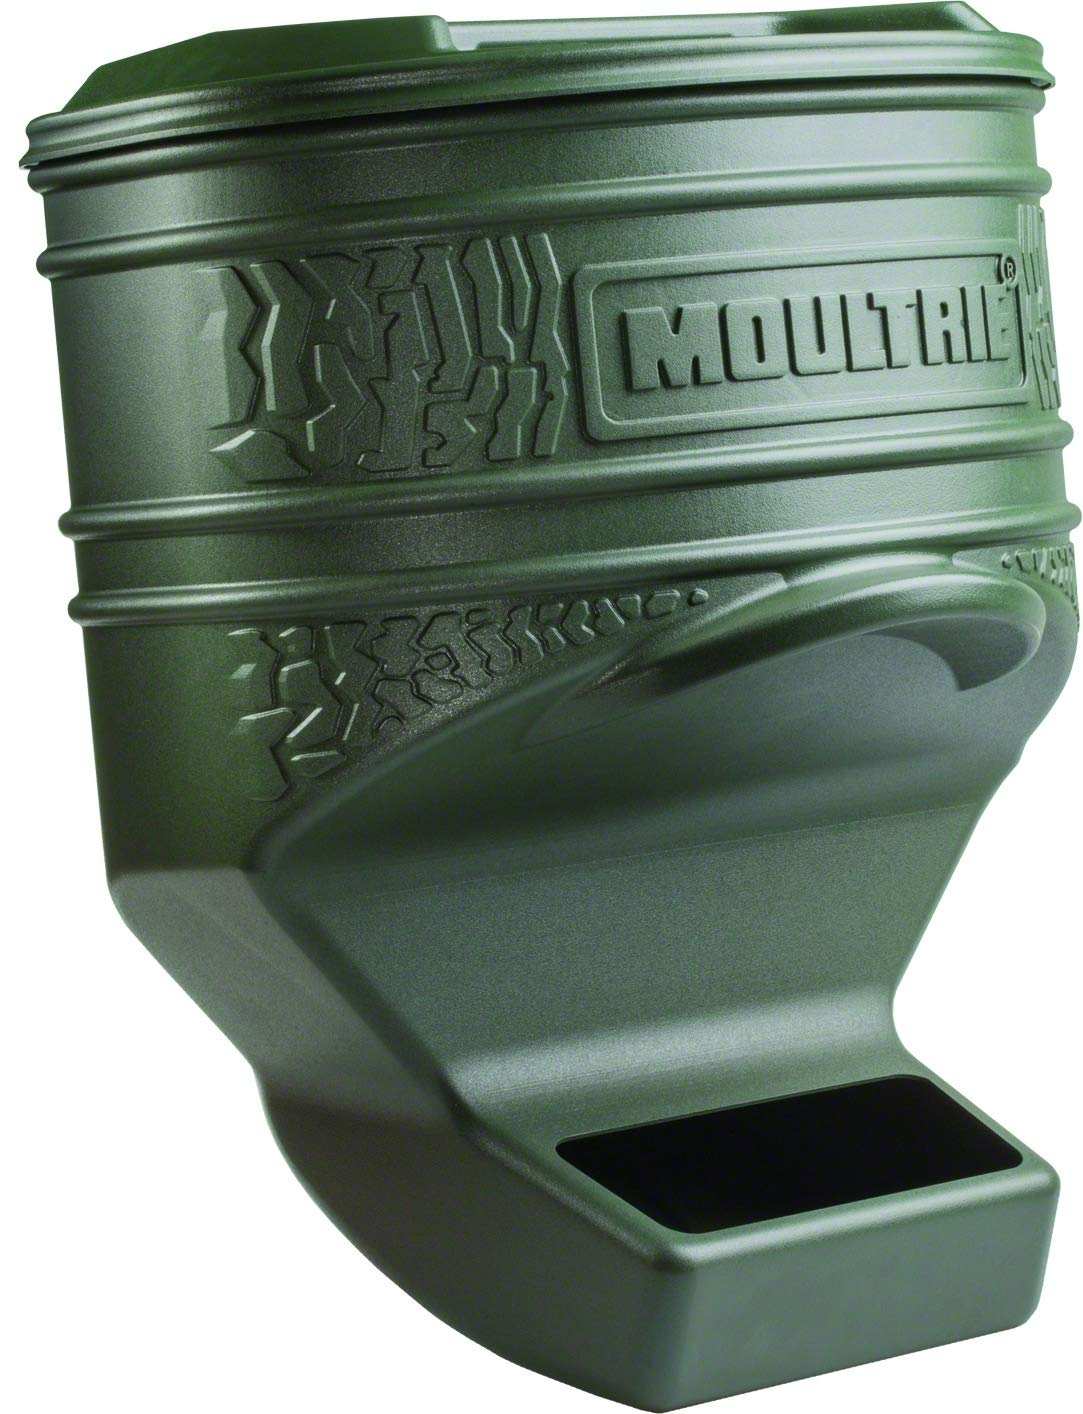 Moultrie Feed Station Pro | Gravity Feeder | UV-Resistant Plastic | 80 lb. Capacity | Weeping Holes | Straps Included by Moultrie